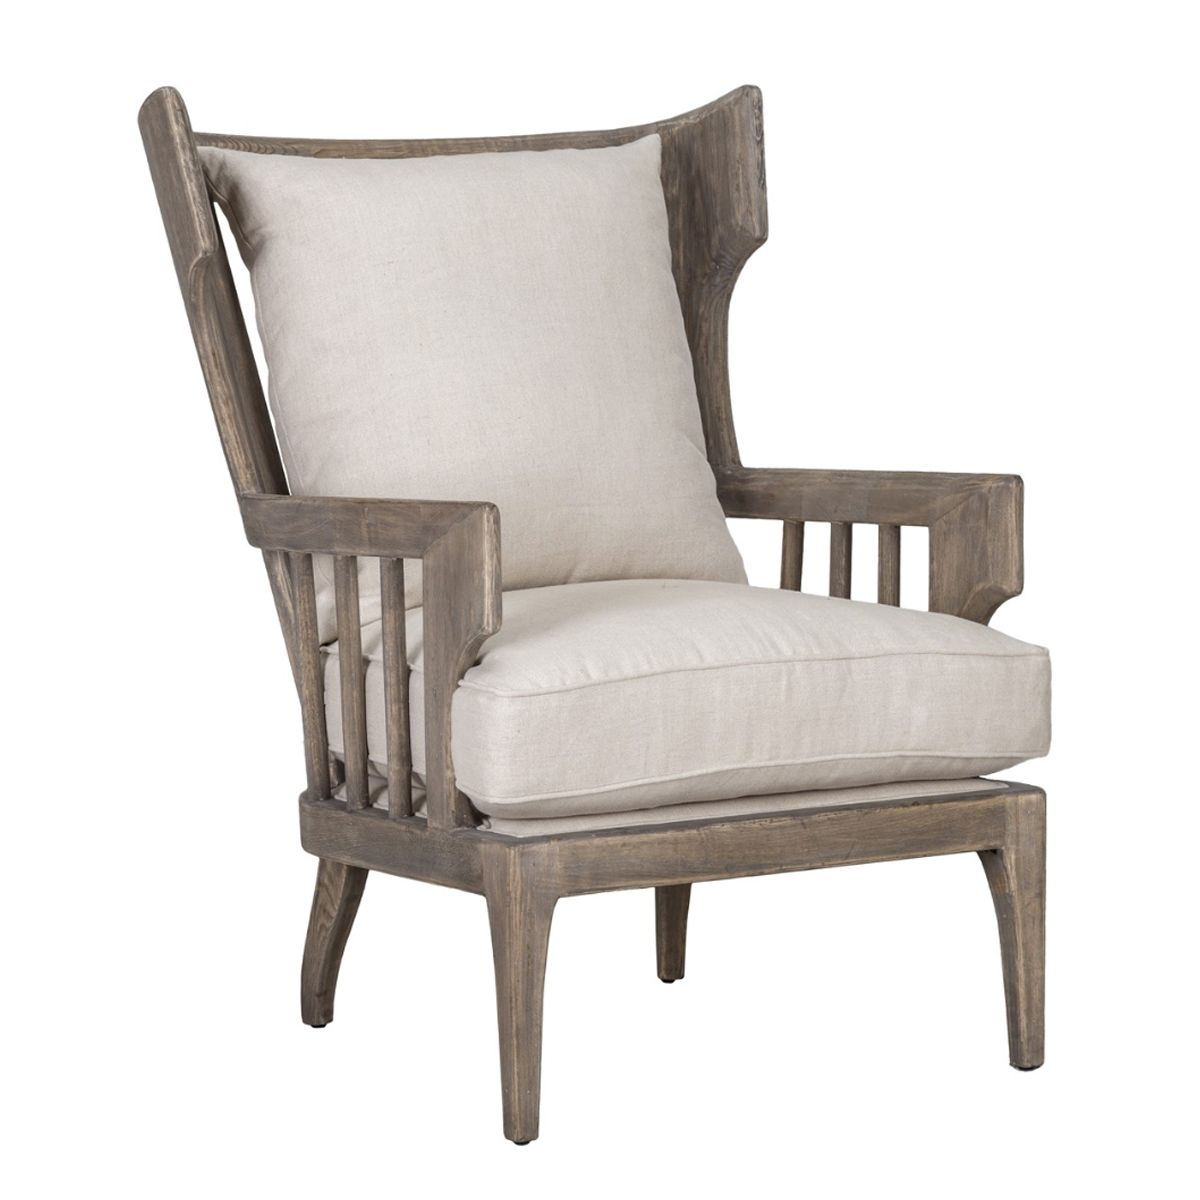 Lawrence Accent Chair | New Home | Pinterest Within Circuit Swivel Accent Chairs (Image 10 of 20)